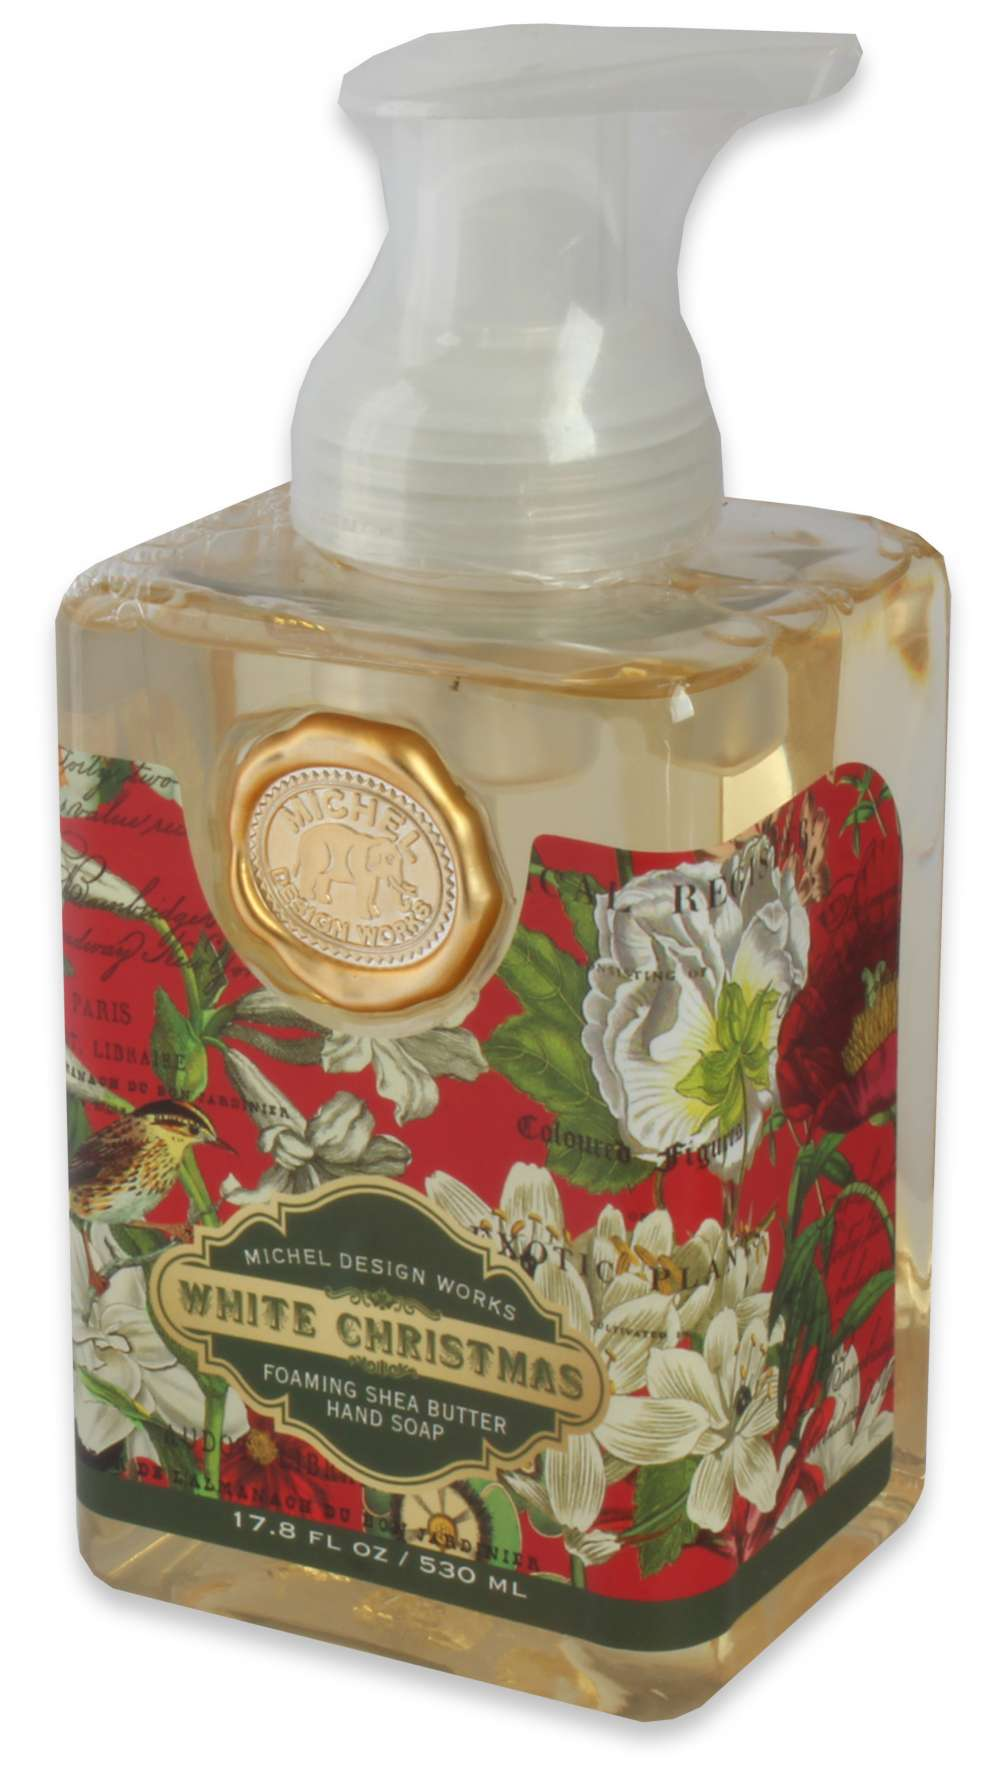 Michel Design Works - White Christmas Foaming Hand Soap